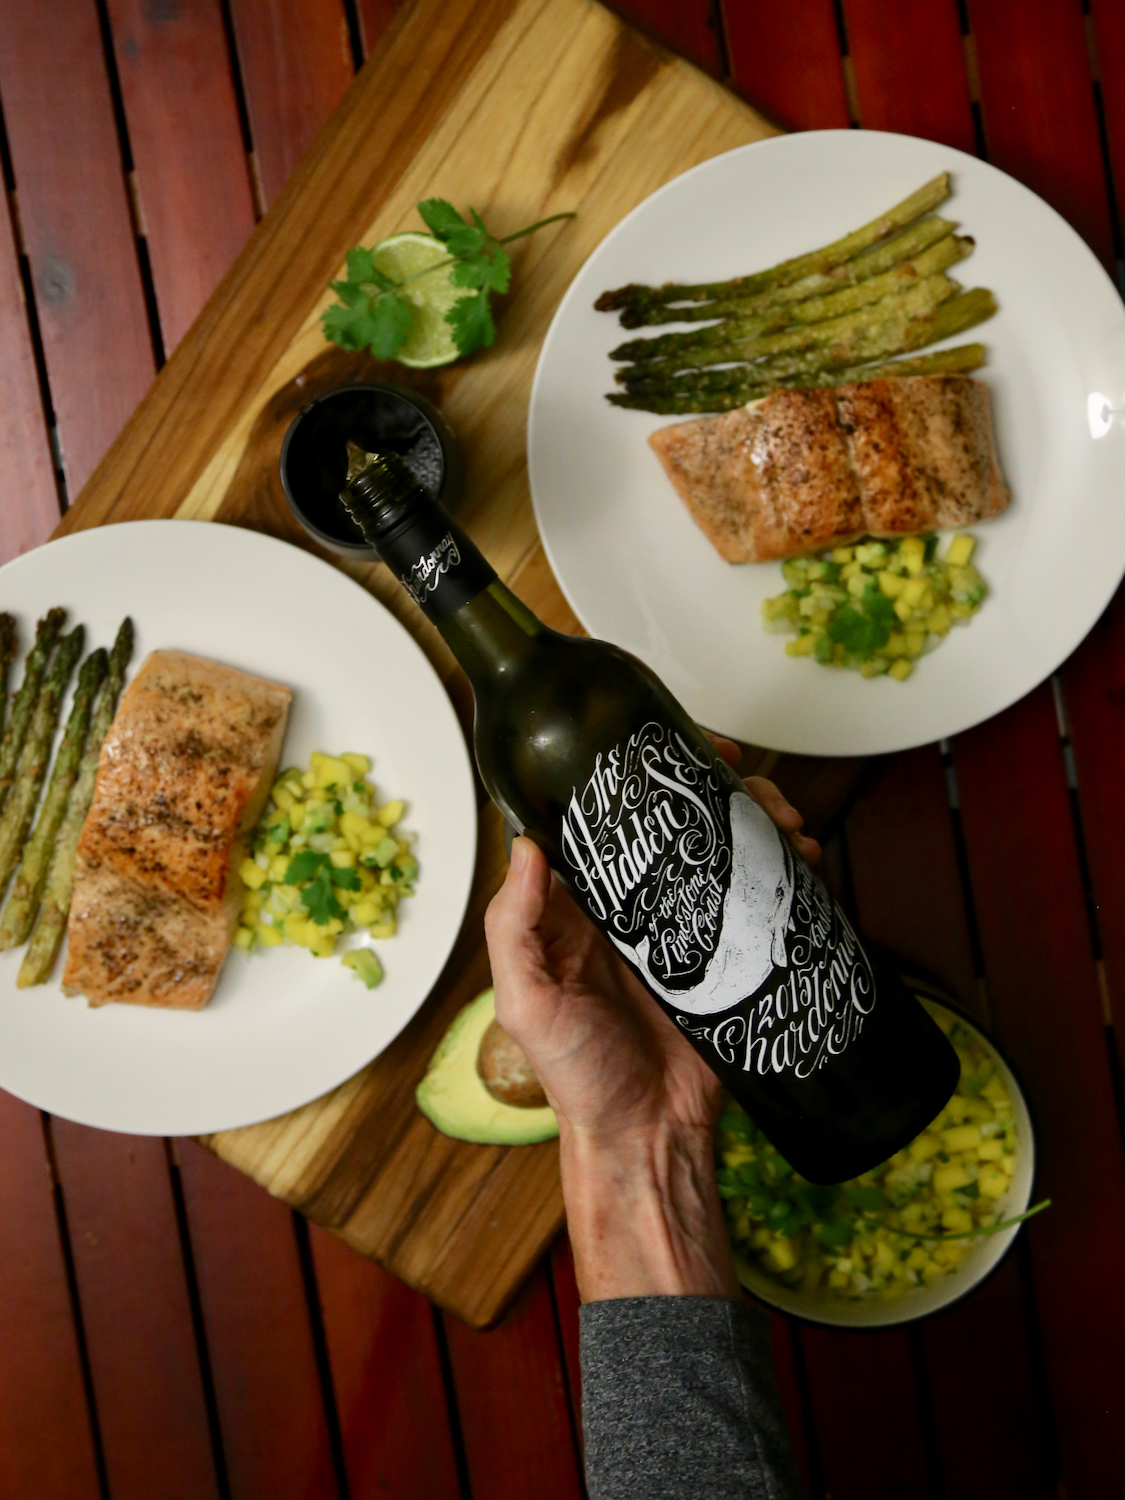 Hand pouring a bottle of wine with a salmon dinner